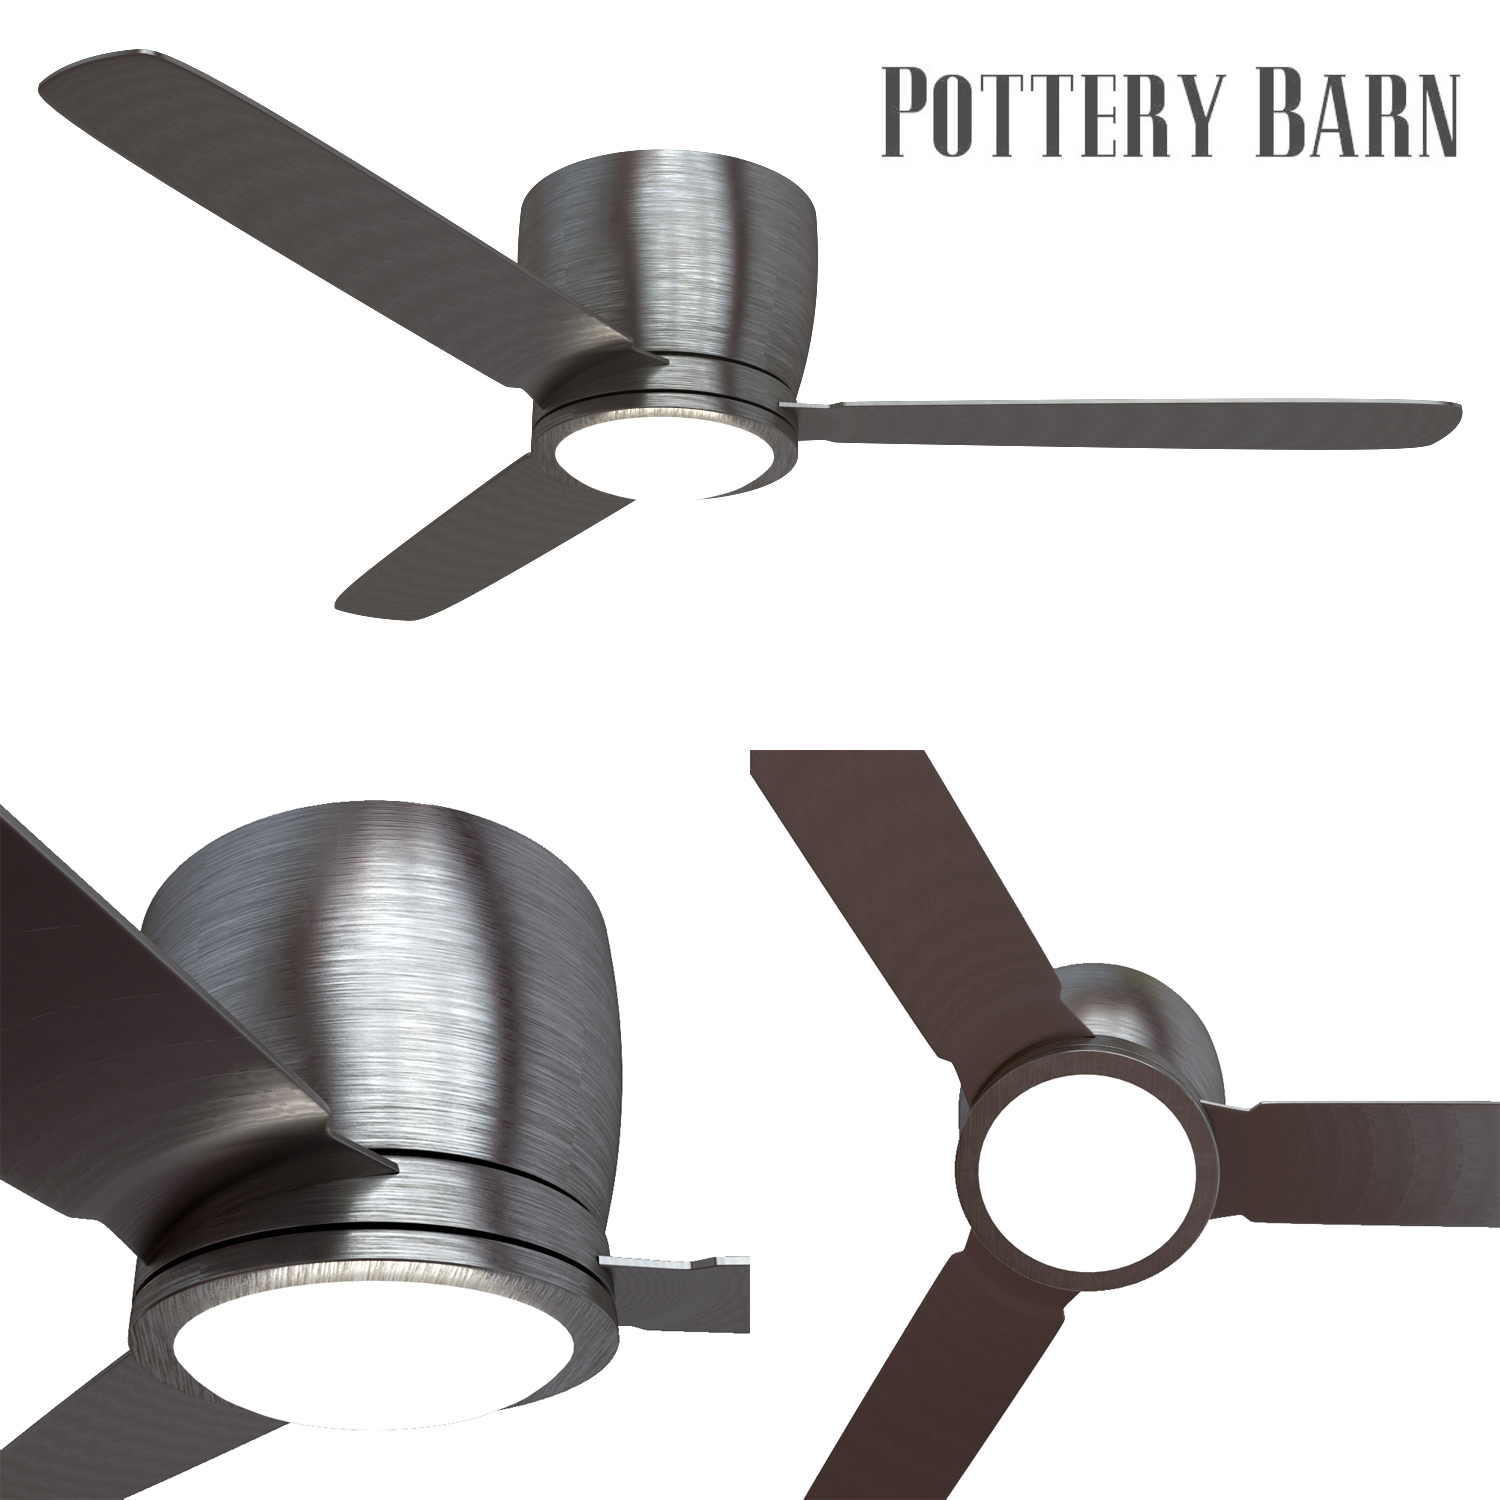 pottery barn ceiling fan brushed nickel by erkin aliyev 3docean rh 3docean net